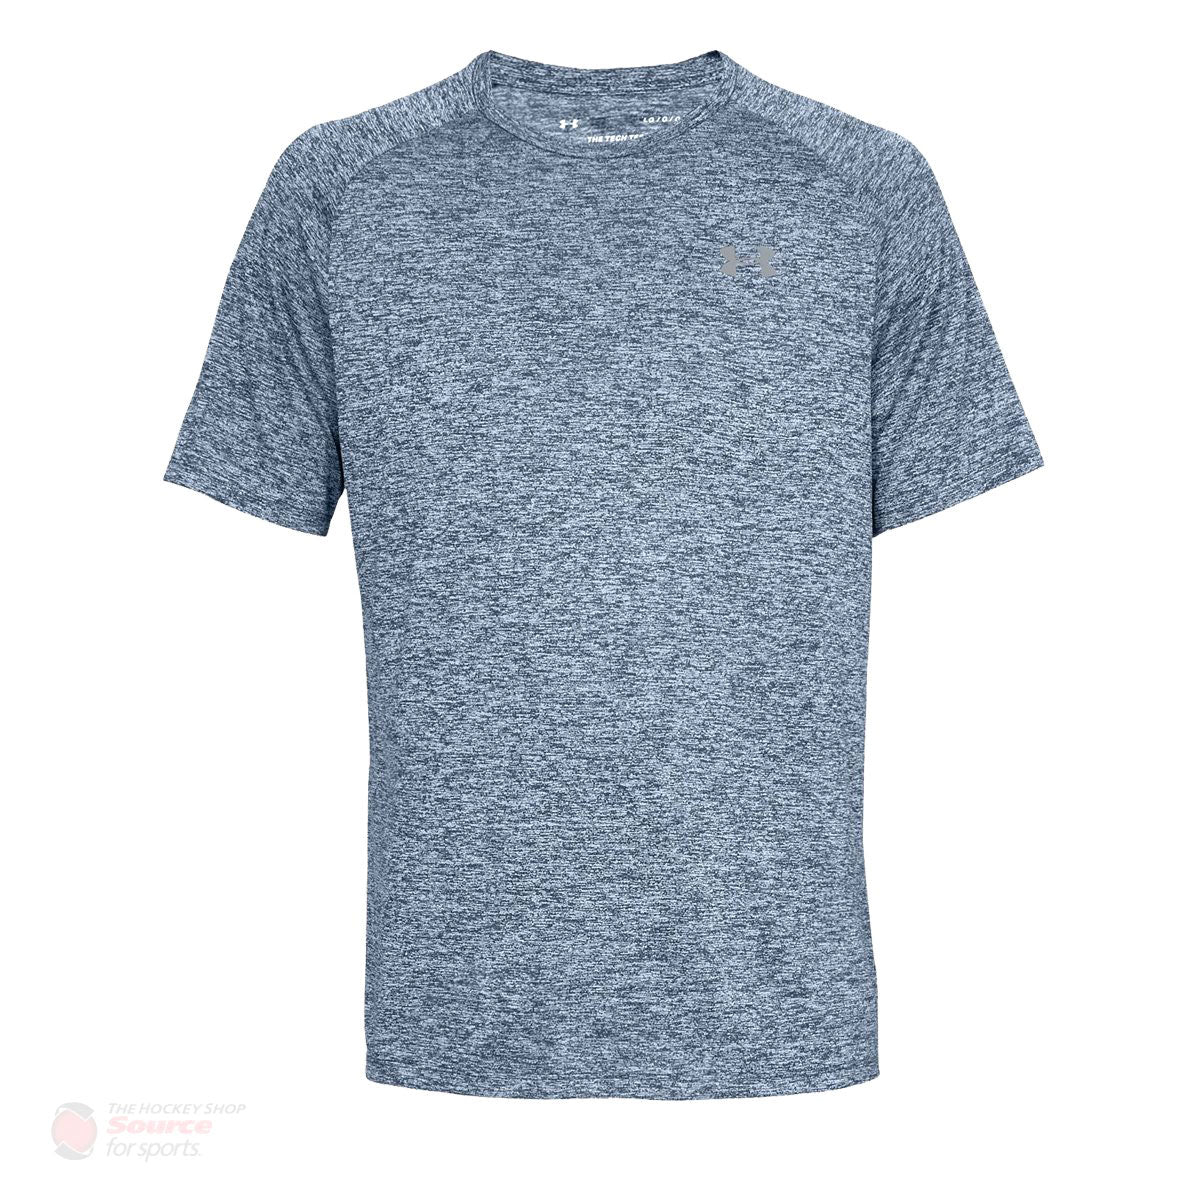 Under Armour Tech 2.0 Men's Shirt